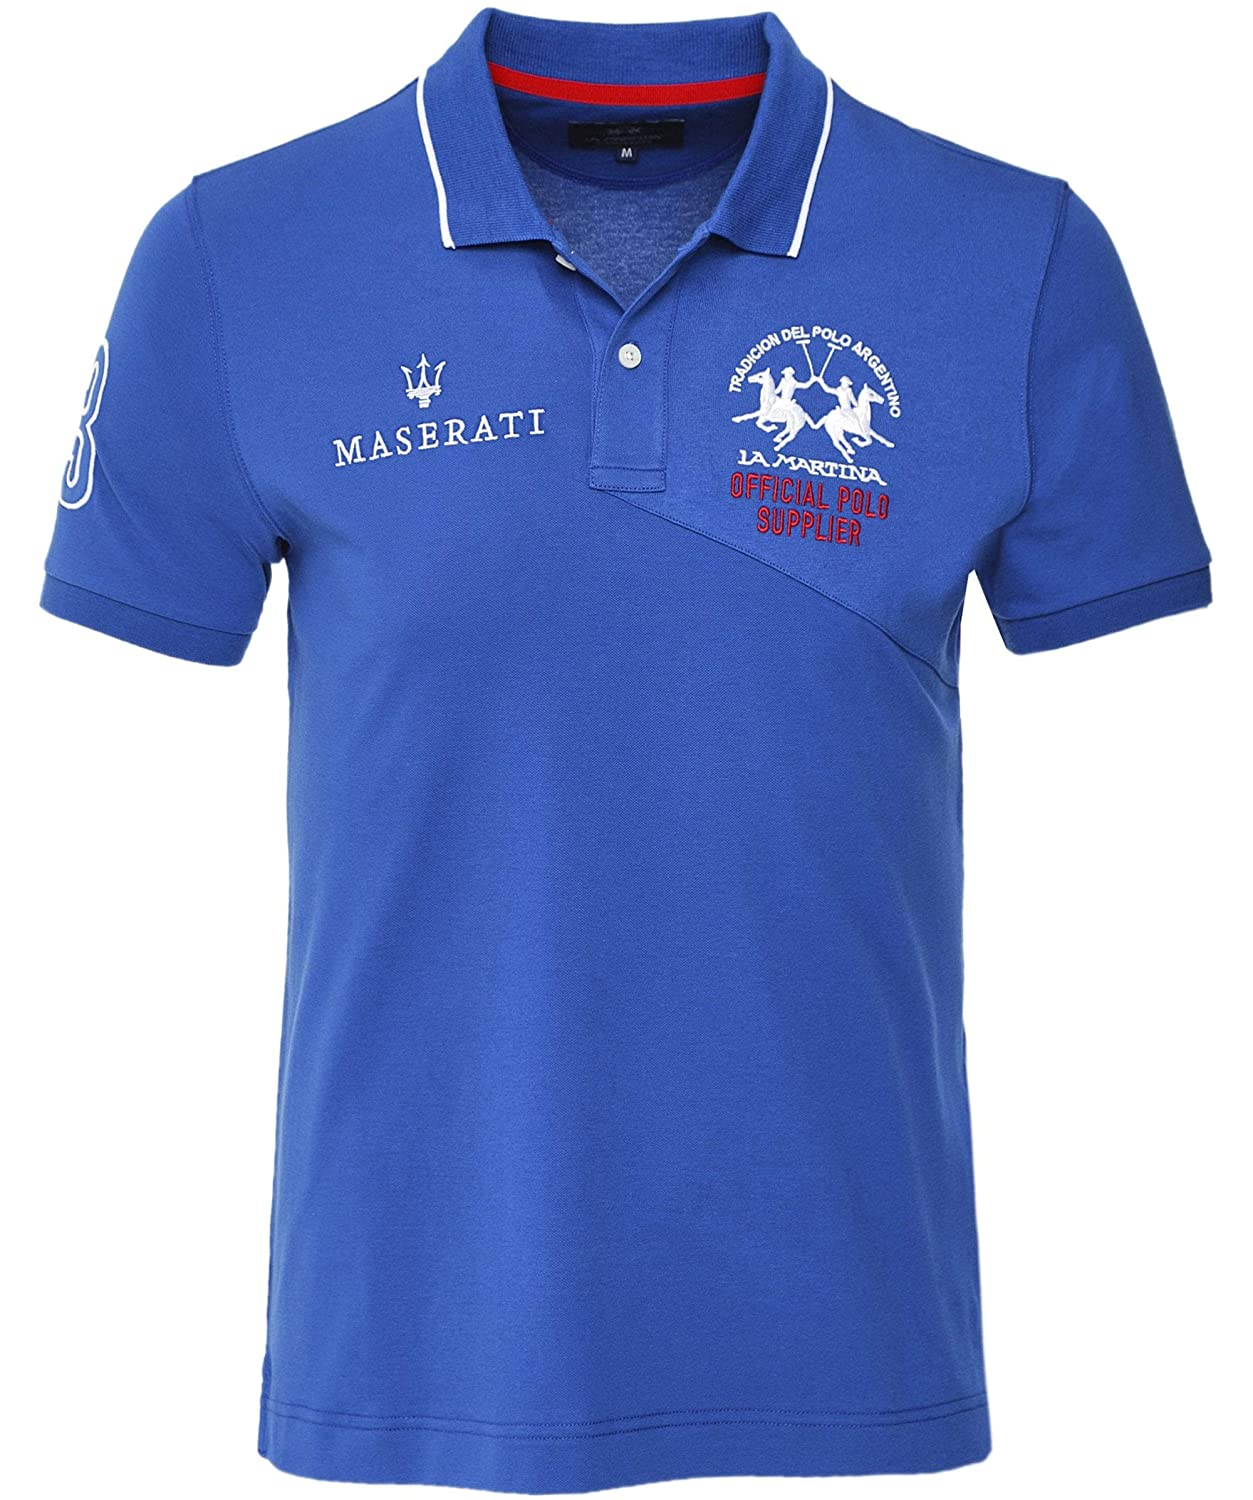 La Martina Hombres Polo Regular Fit Ok Azul L: Amazon.es: Ropa y ...